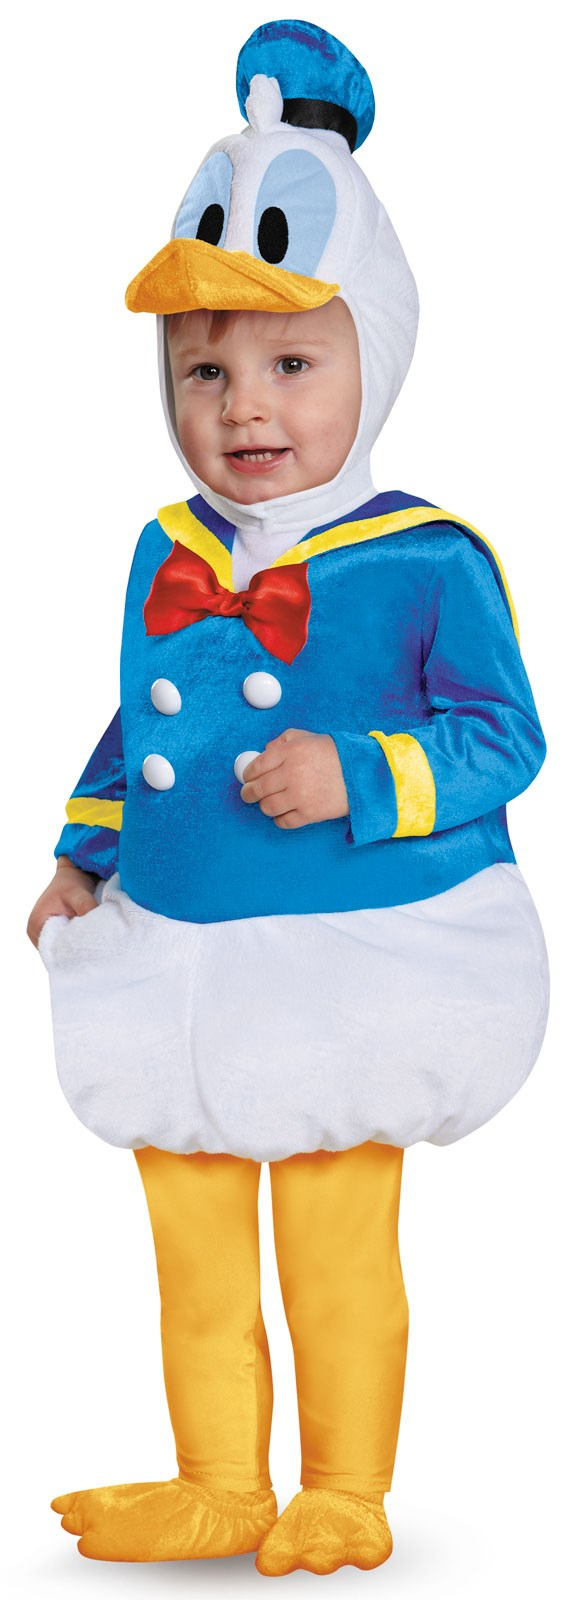 Baby Donald Duck Prestige Costume